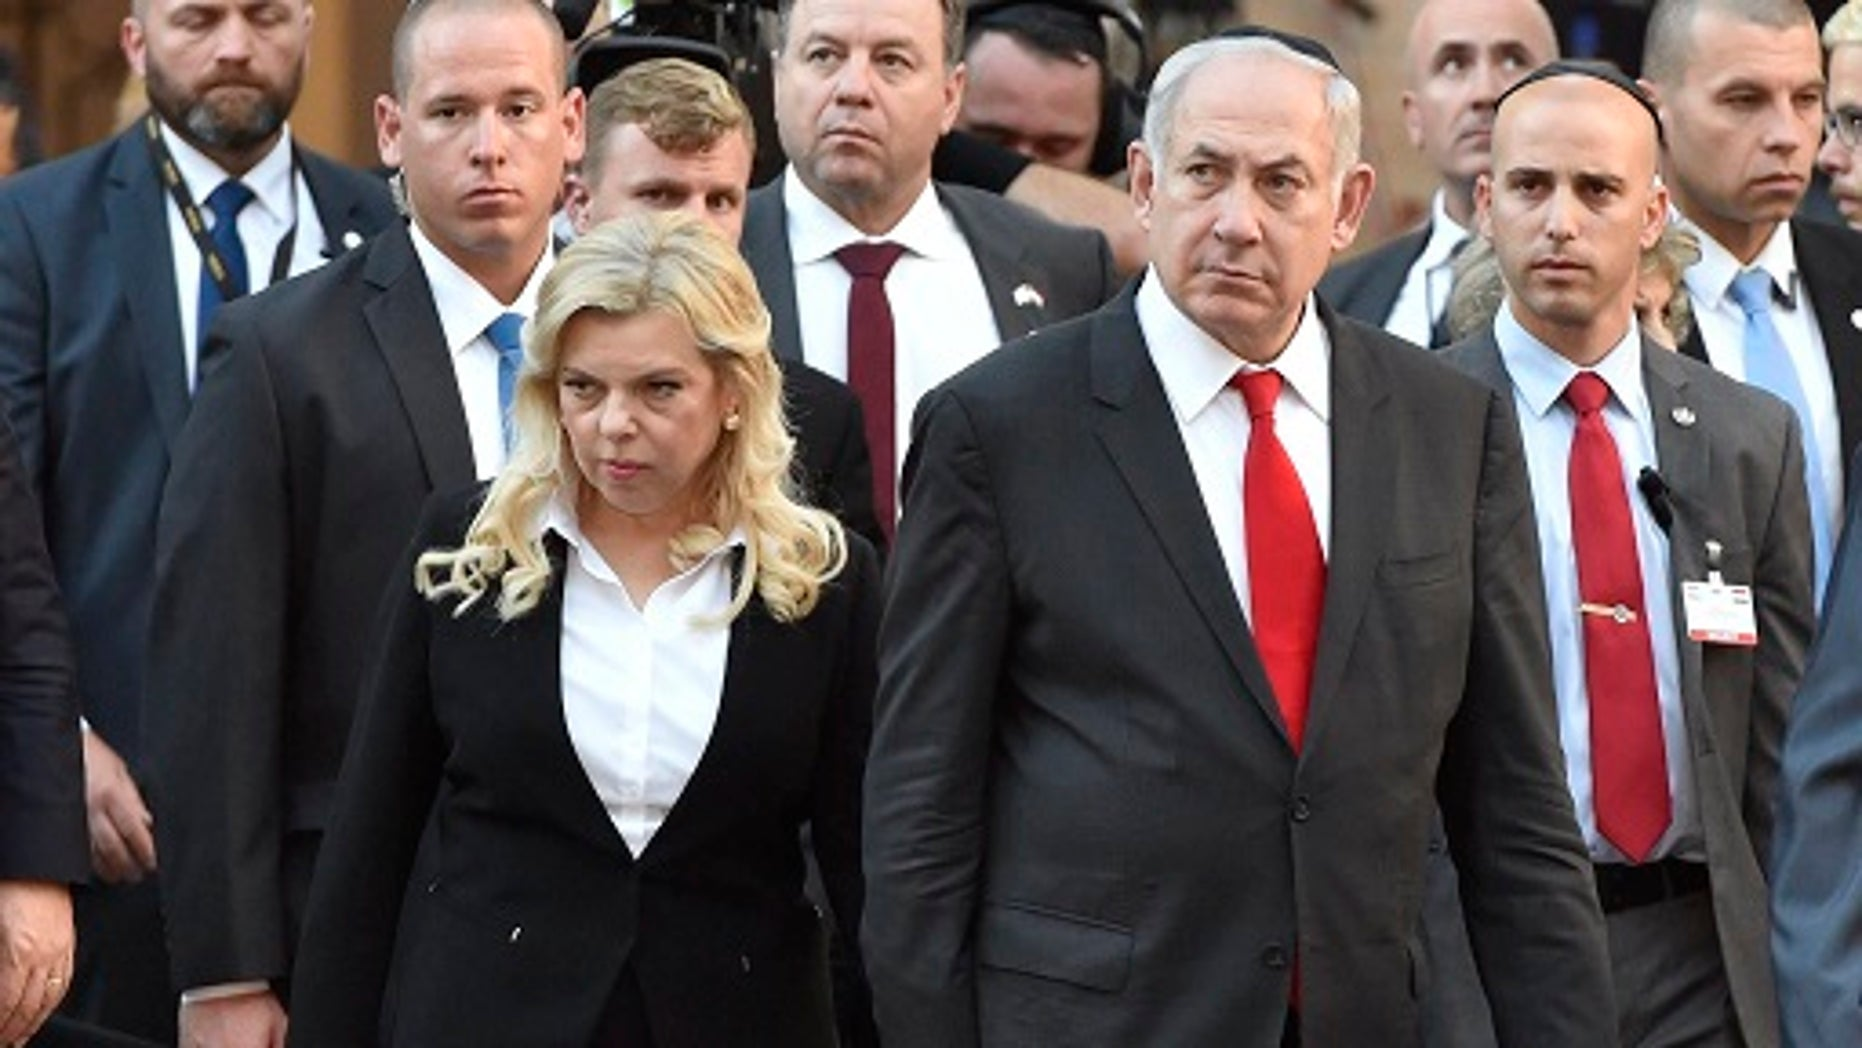 Benjamin Netanyahu is increasingly dropping what remains of his statesmanlike persona in favor of nationalist rhetoric popular with his base. According to one report, his wife Sara is headed toward an indictment for fraud regarding their household expenses.